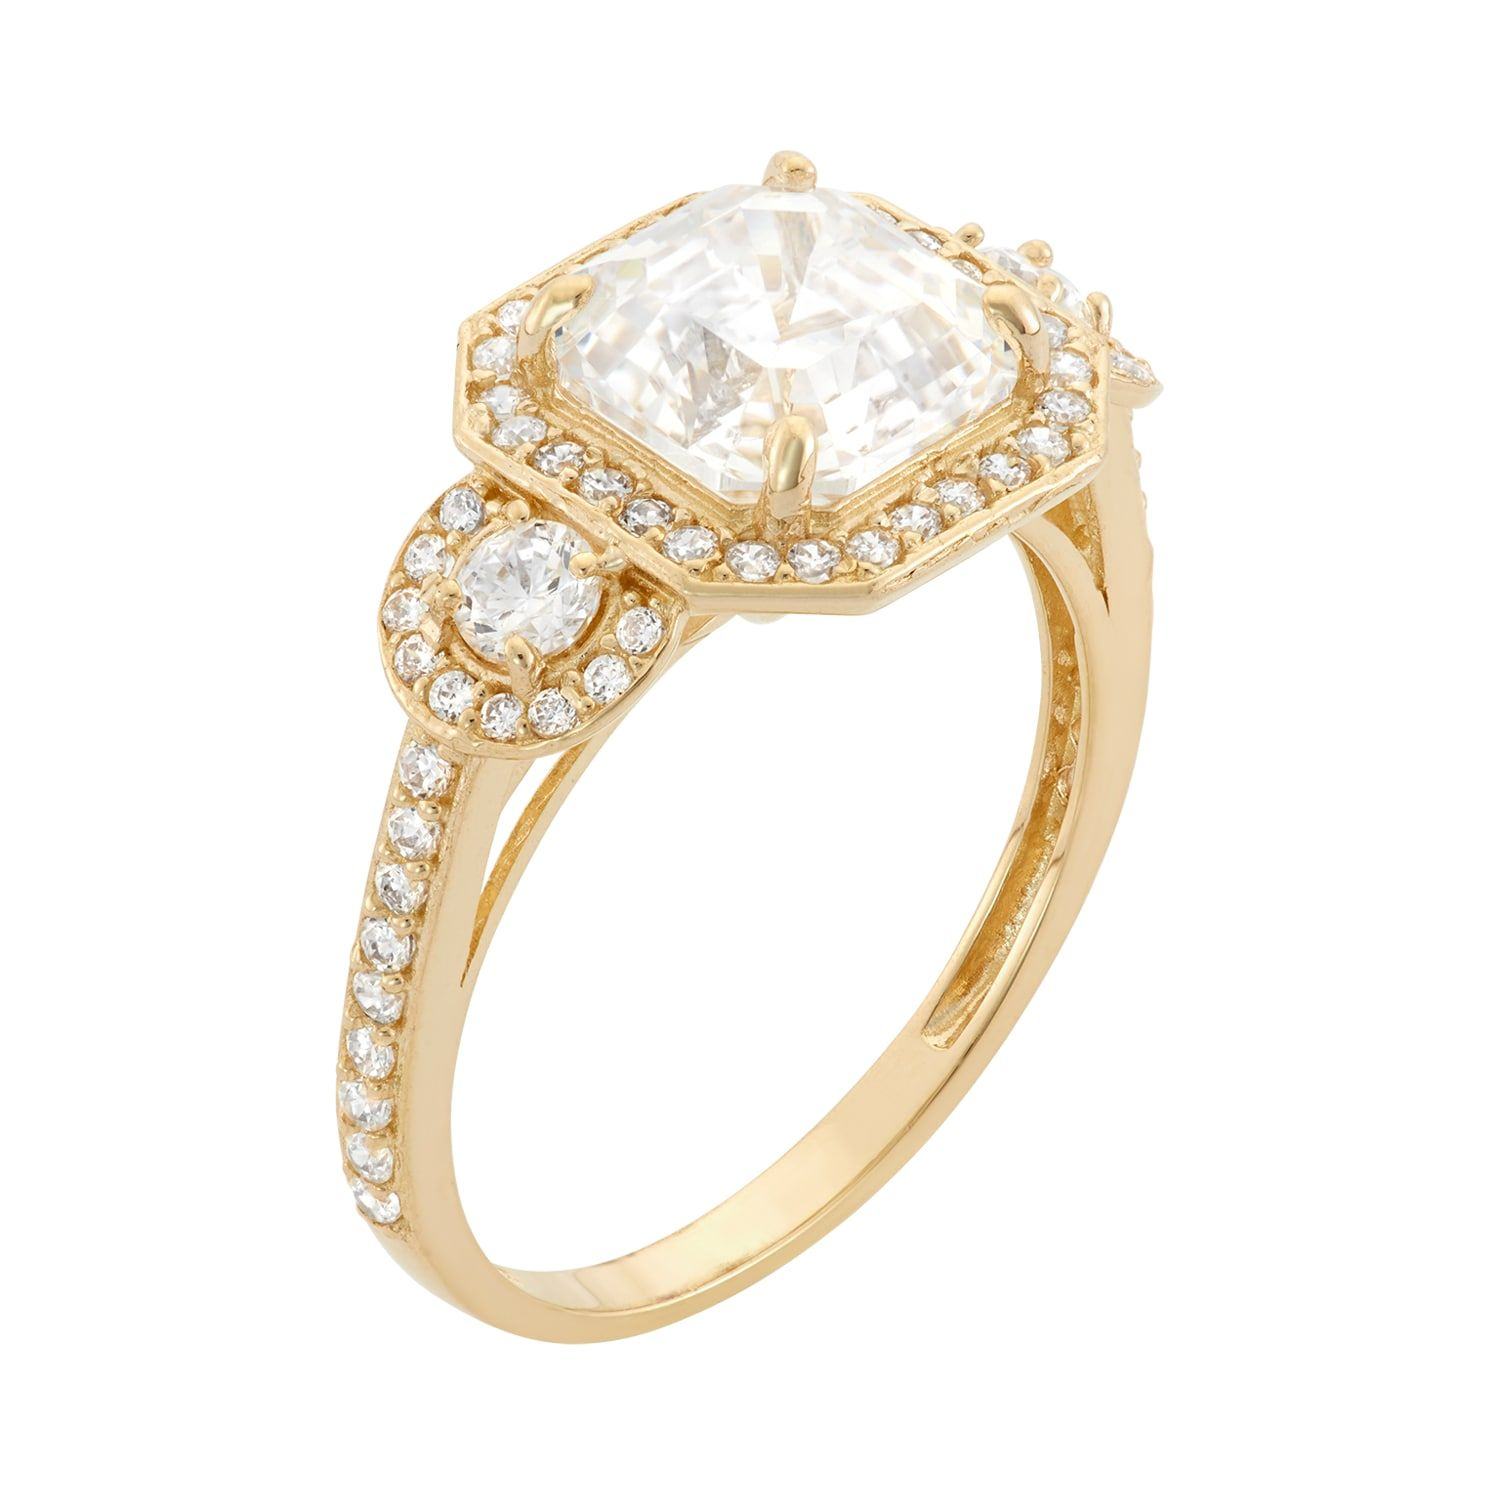 10k Gold Cubic Zirconia Halo Engagement Ring Cubic Gold Zirconia Ring